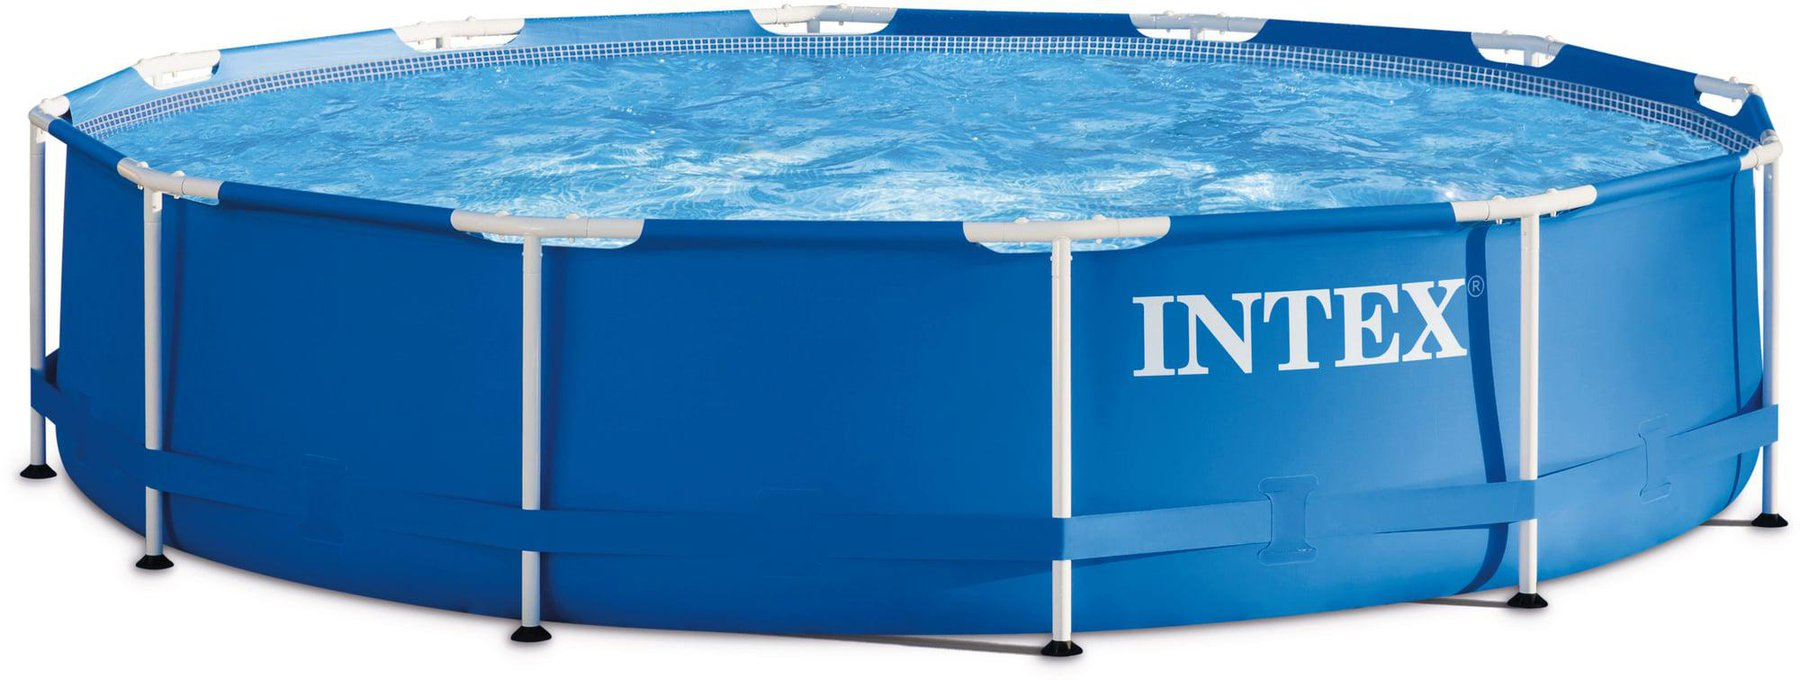 Pool Filterpumpe Lautstärke Intex Pools Metal Frame Pool 366 X 76 Cm Mit Filterpumpe